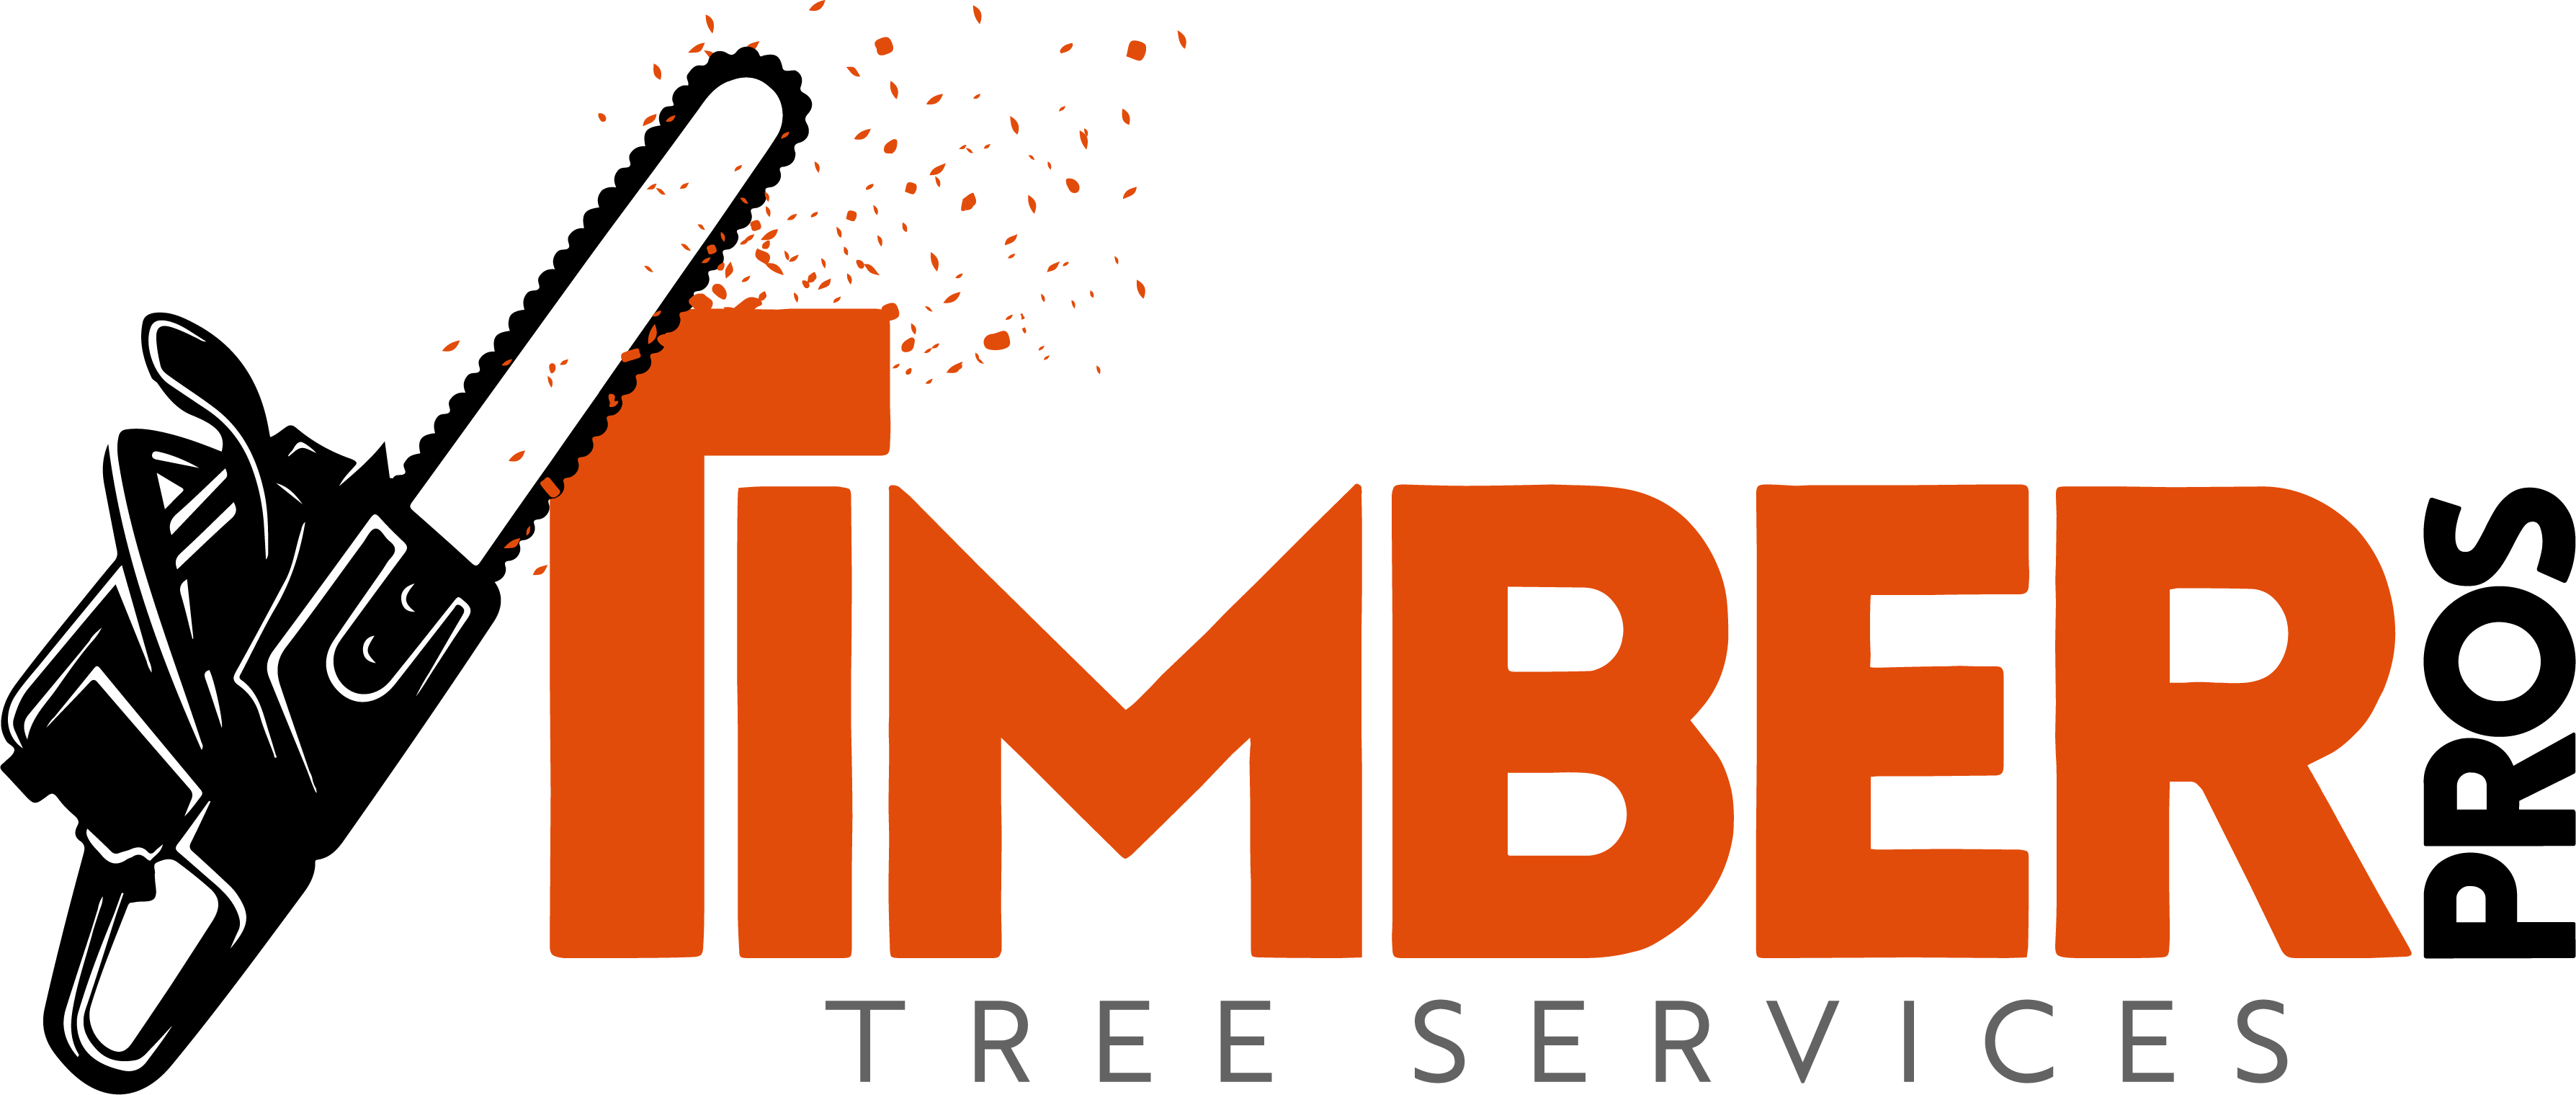 Timber Pro Tree Services Leominster Massachusetts